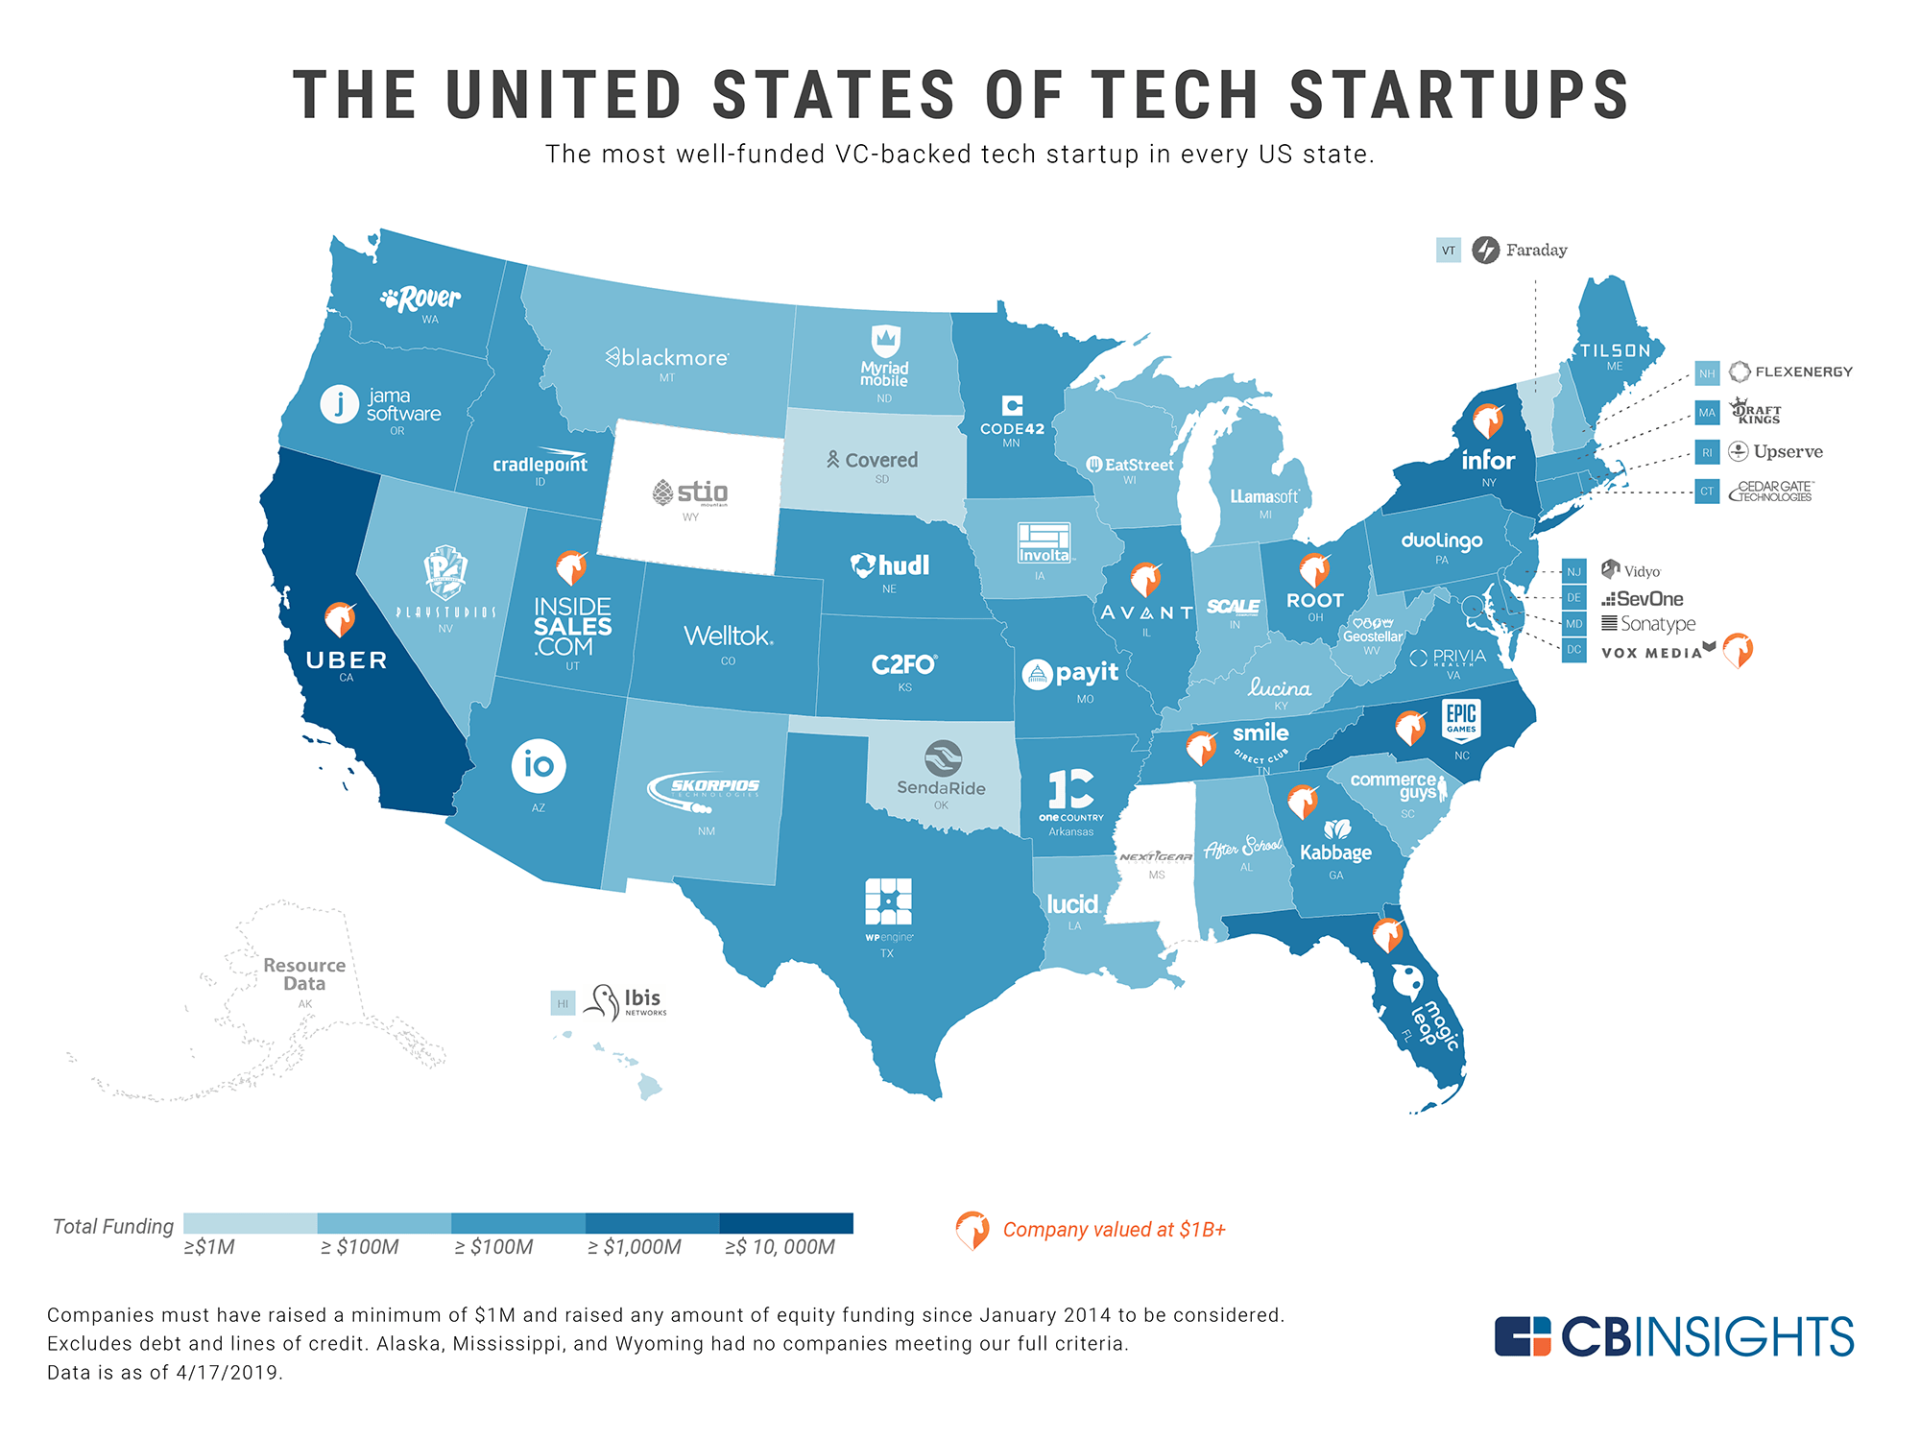 Map from CBInsights Listing the Most Well-Funded Startup in Each State